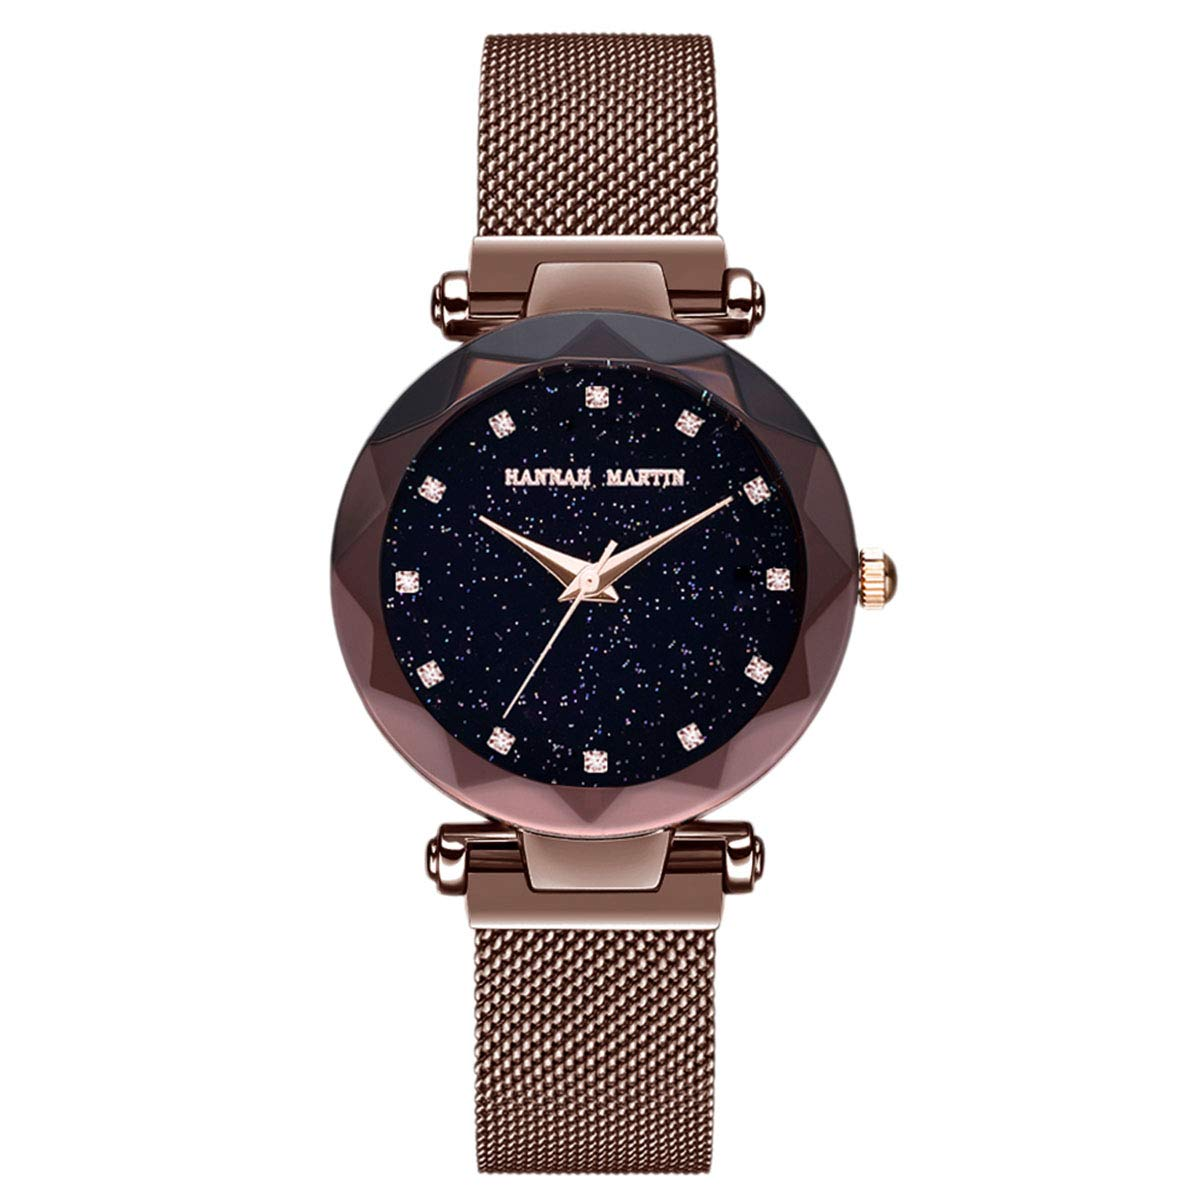 Hannah Martin Japan Quartz Women s Watch Stainless Steel mesh Magnetic Buckle Band Waterproof Ladies Watches